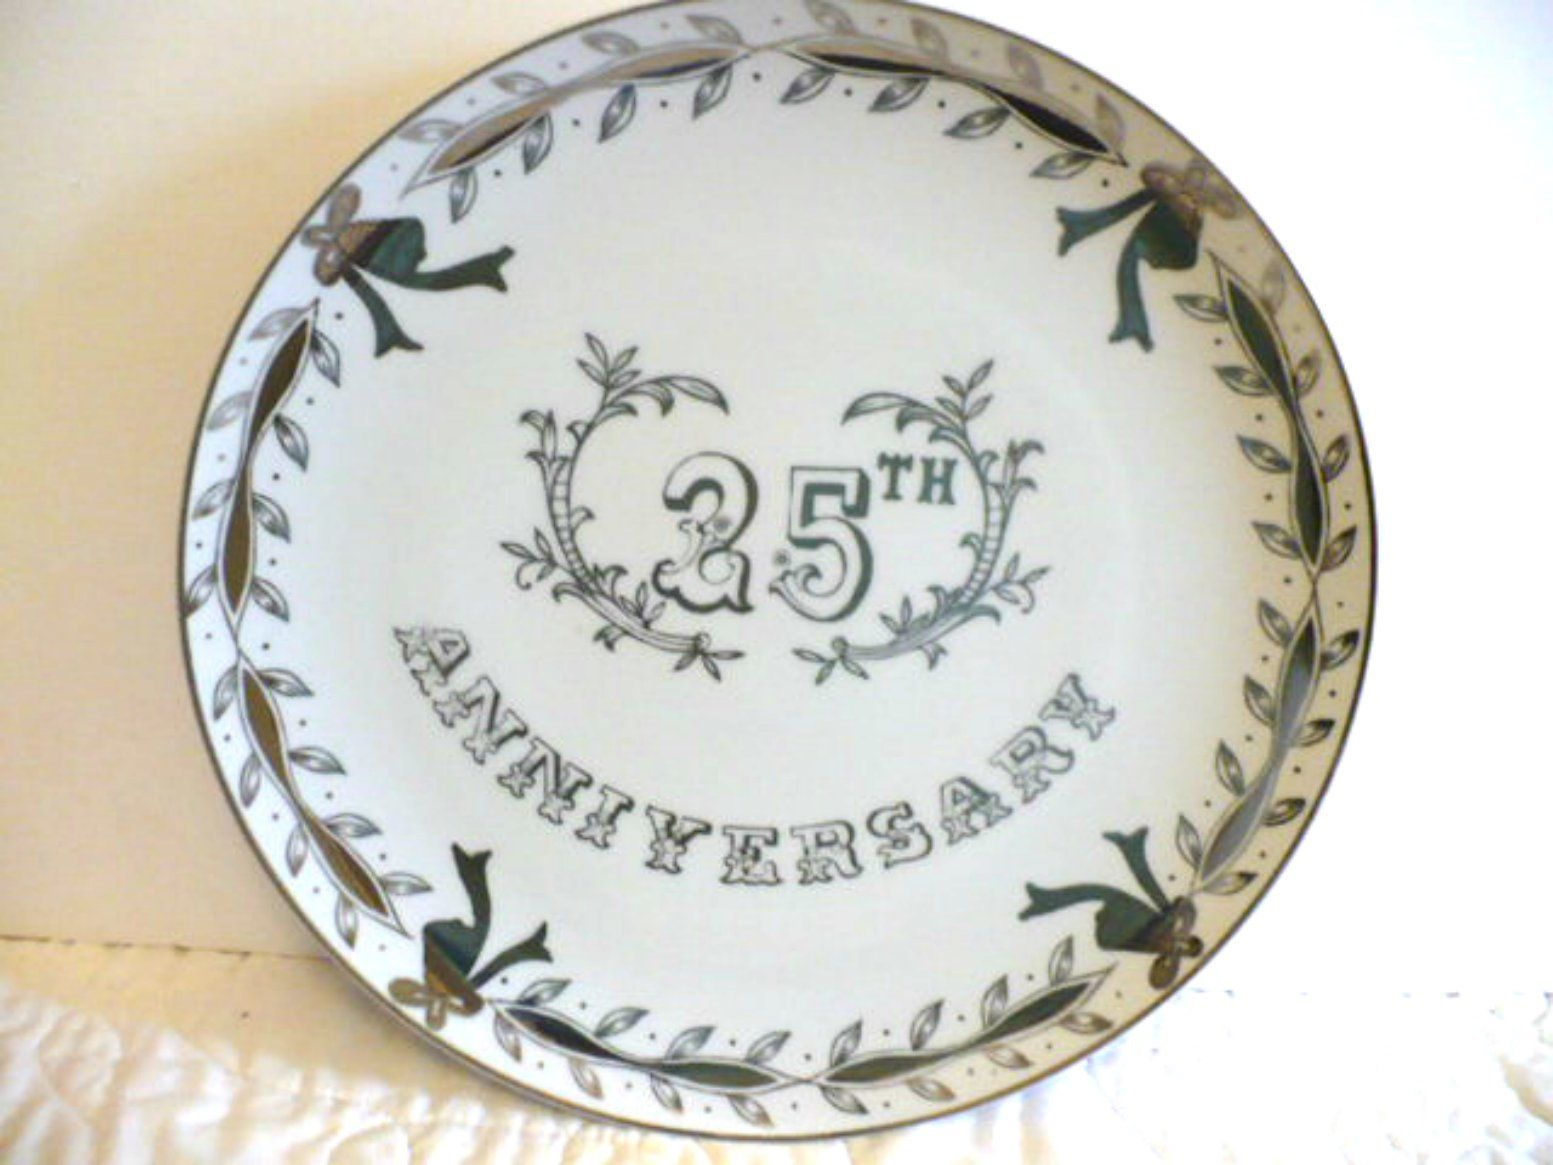 25th silver anniversary gift for parents silver serving